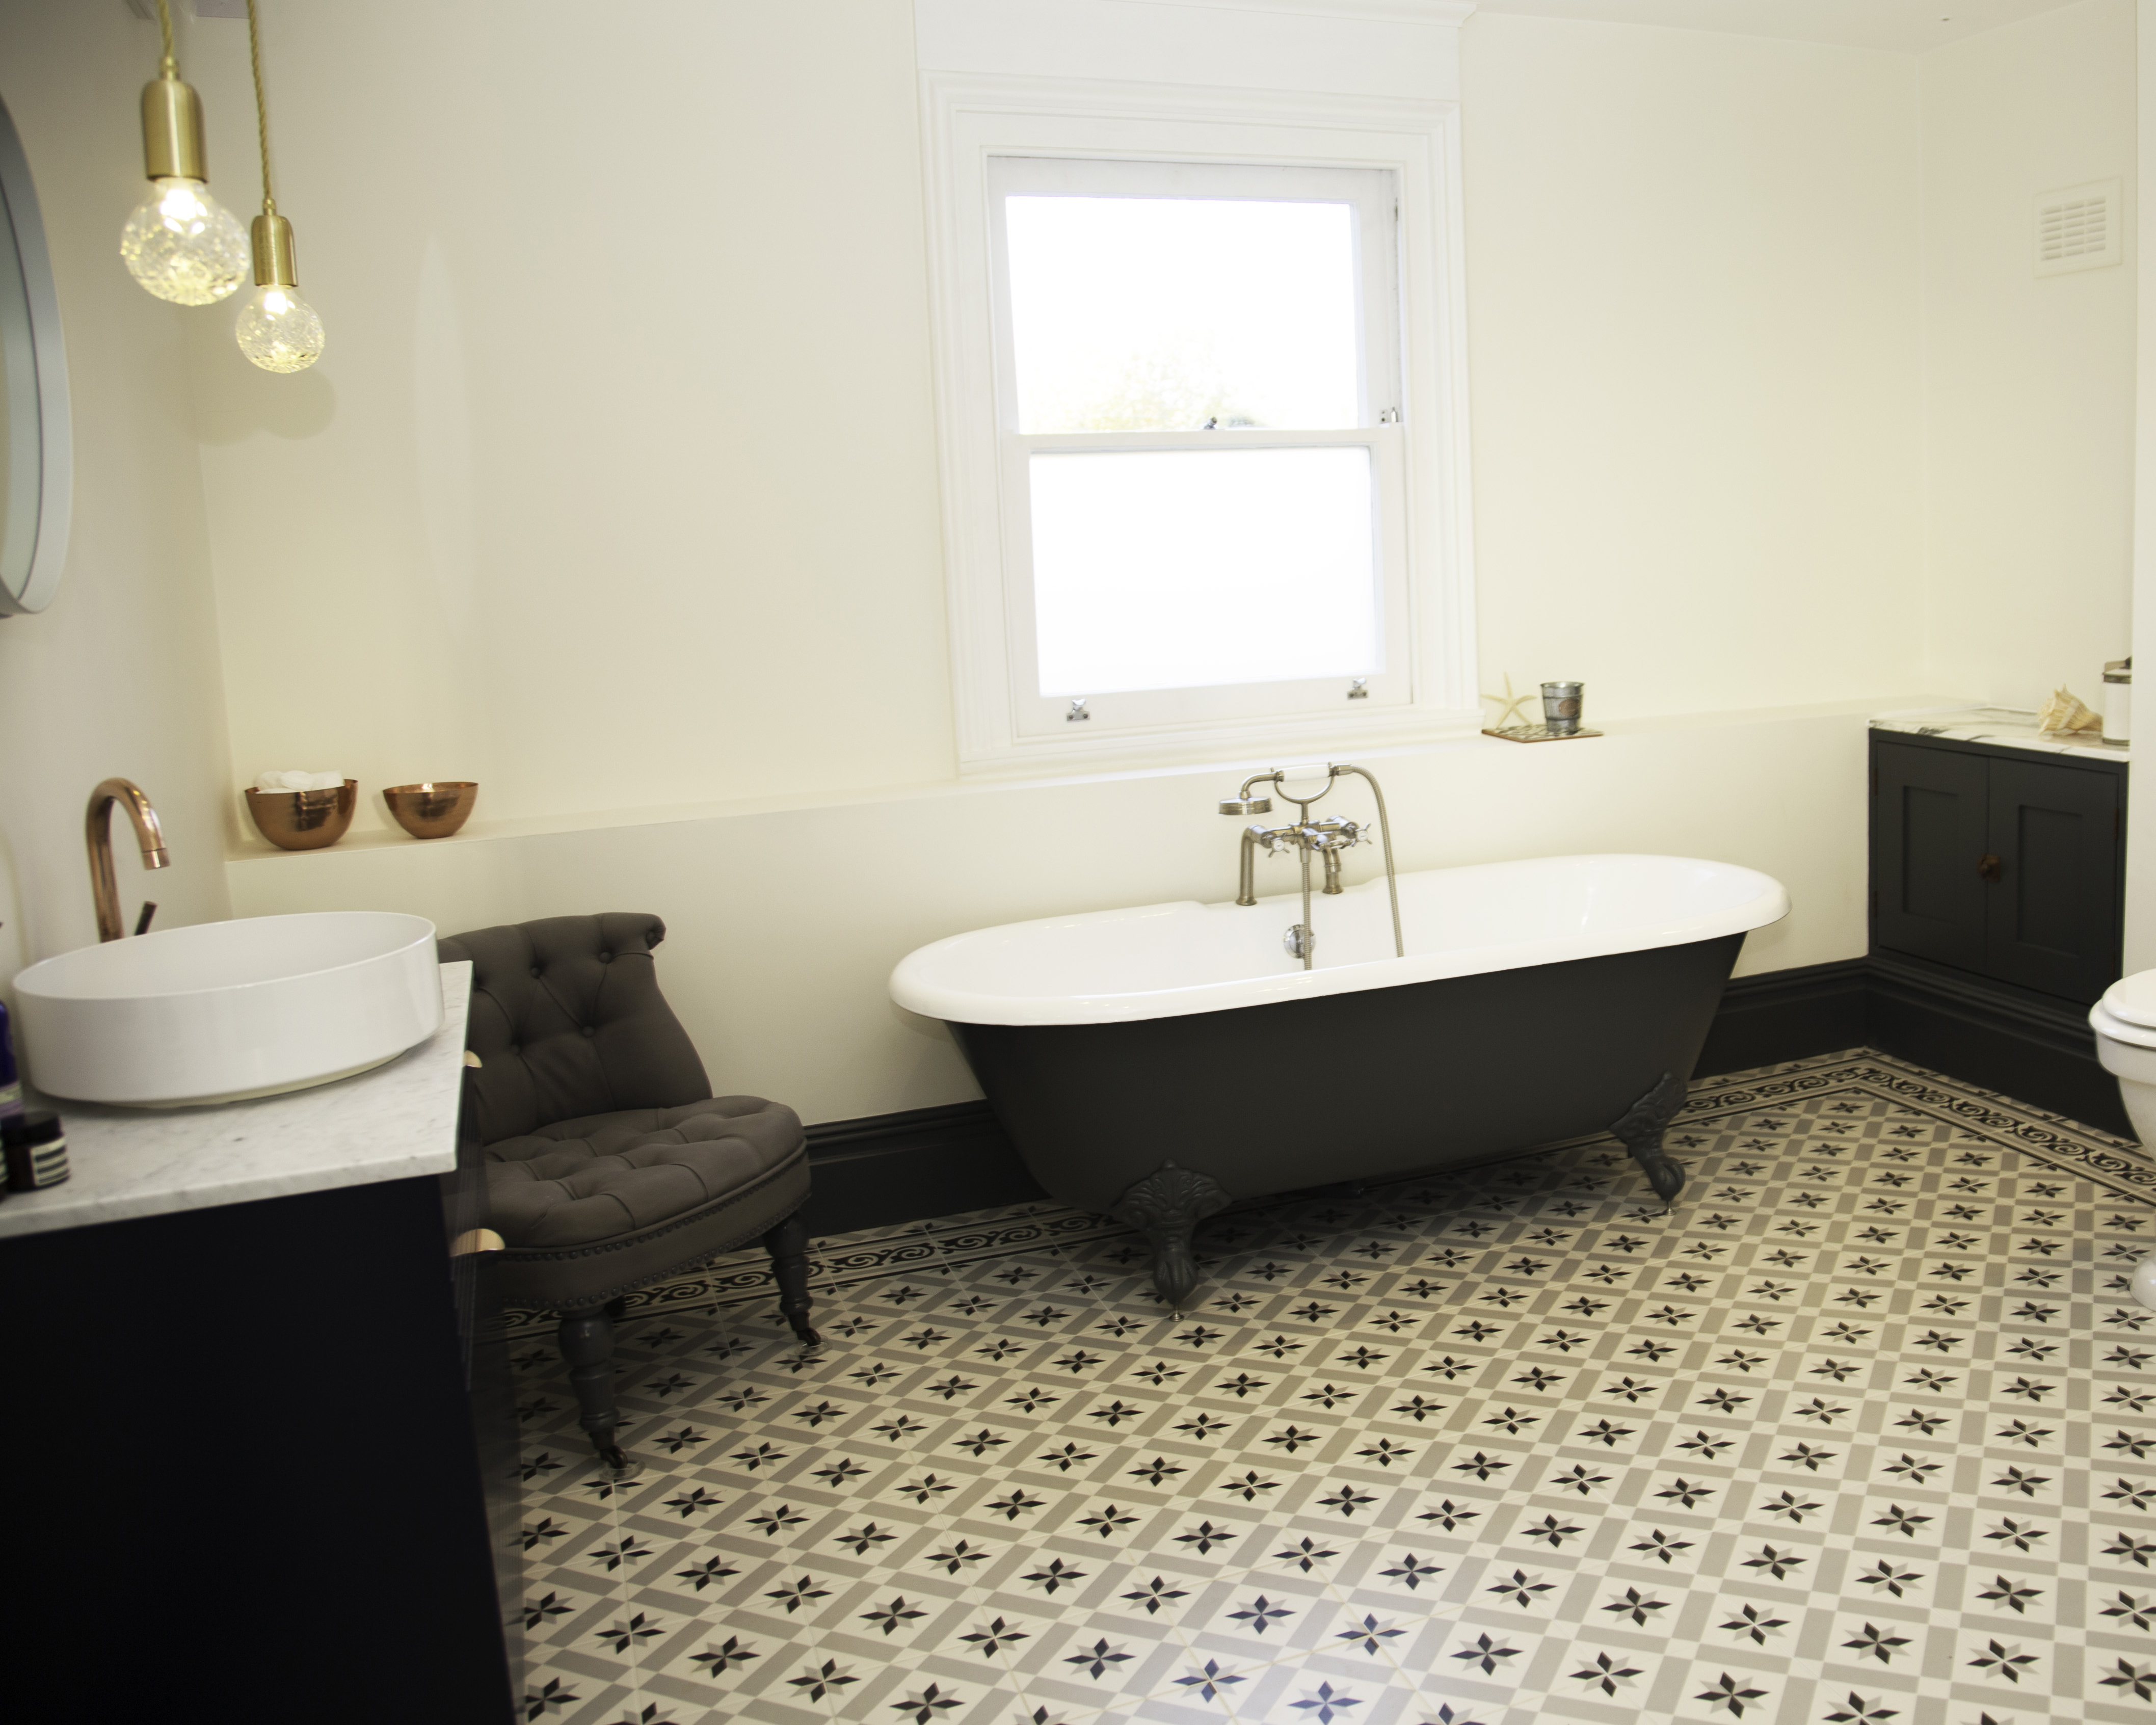 Beautiful bathrooms: Creating an elegant and luxurious space - A + R ...